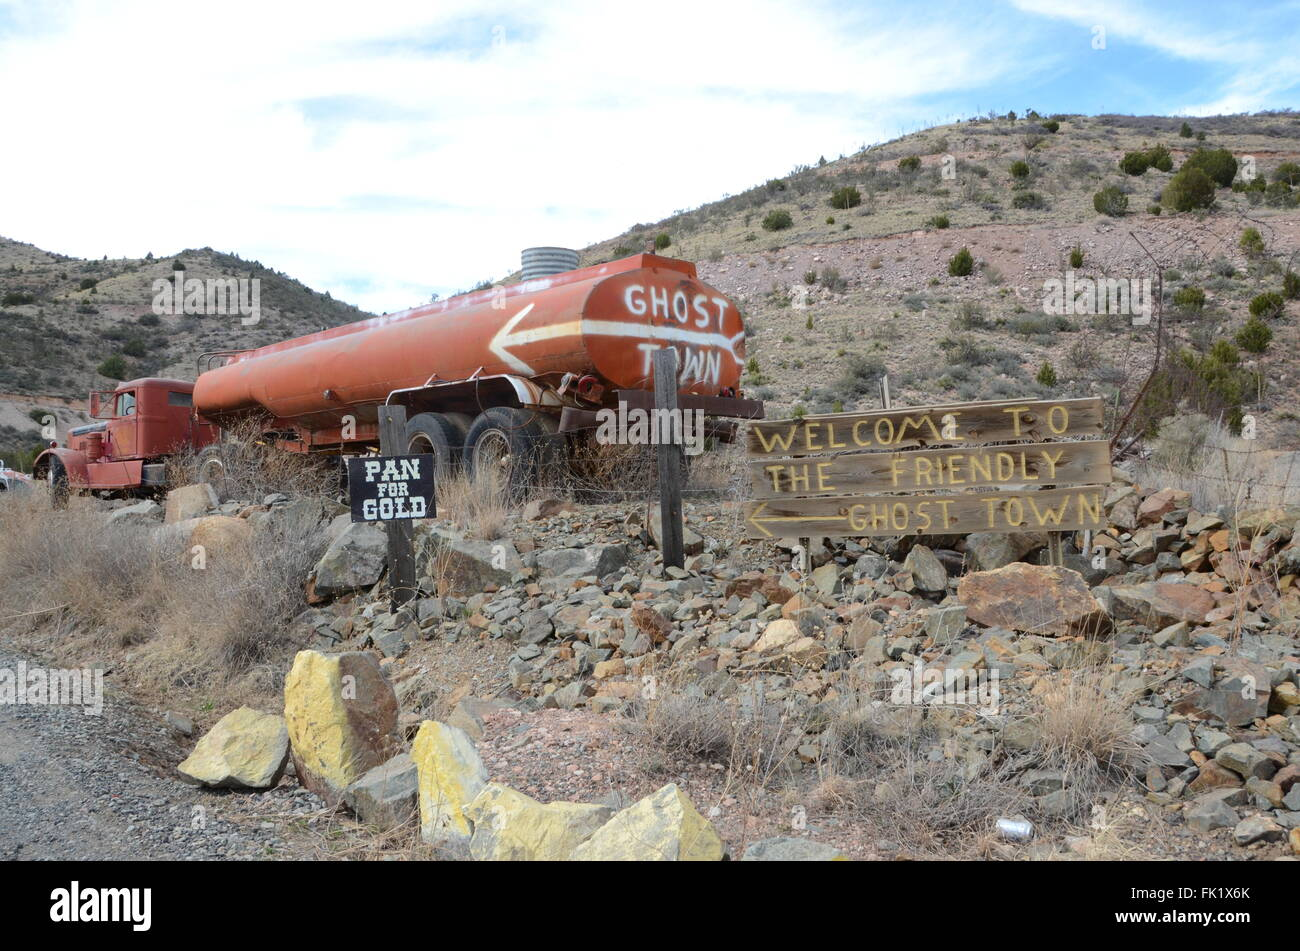 ghost town written on old gas truck gold king hill jerome arizona welcome sign scrub land - Stock Image